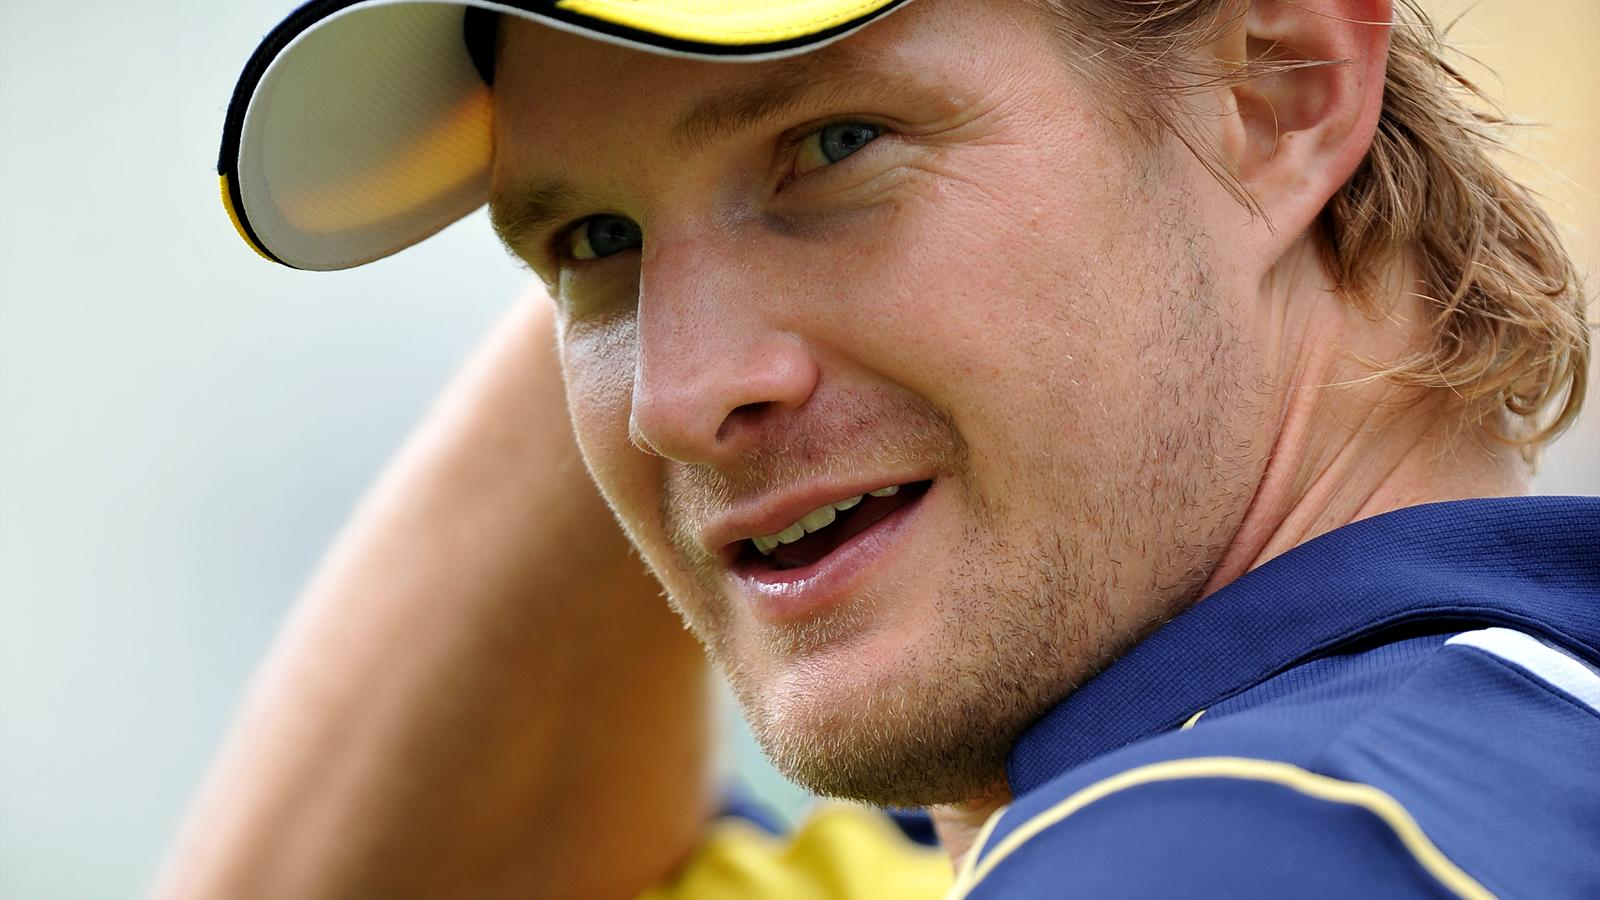 RCB bids Rs 9.5 crore for all-rounder Shane Robert Watson